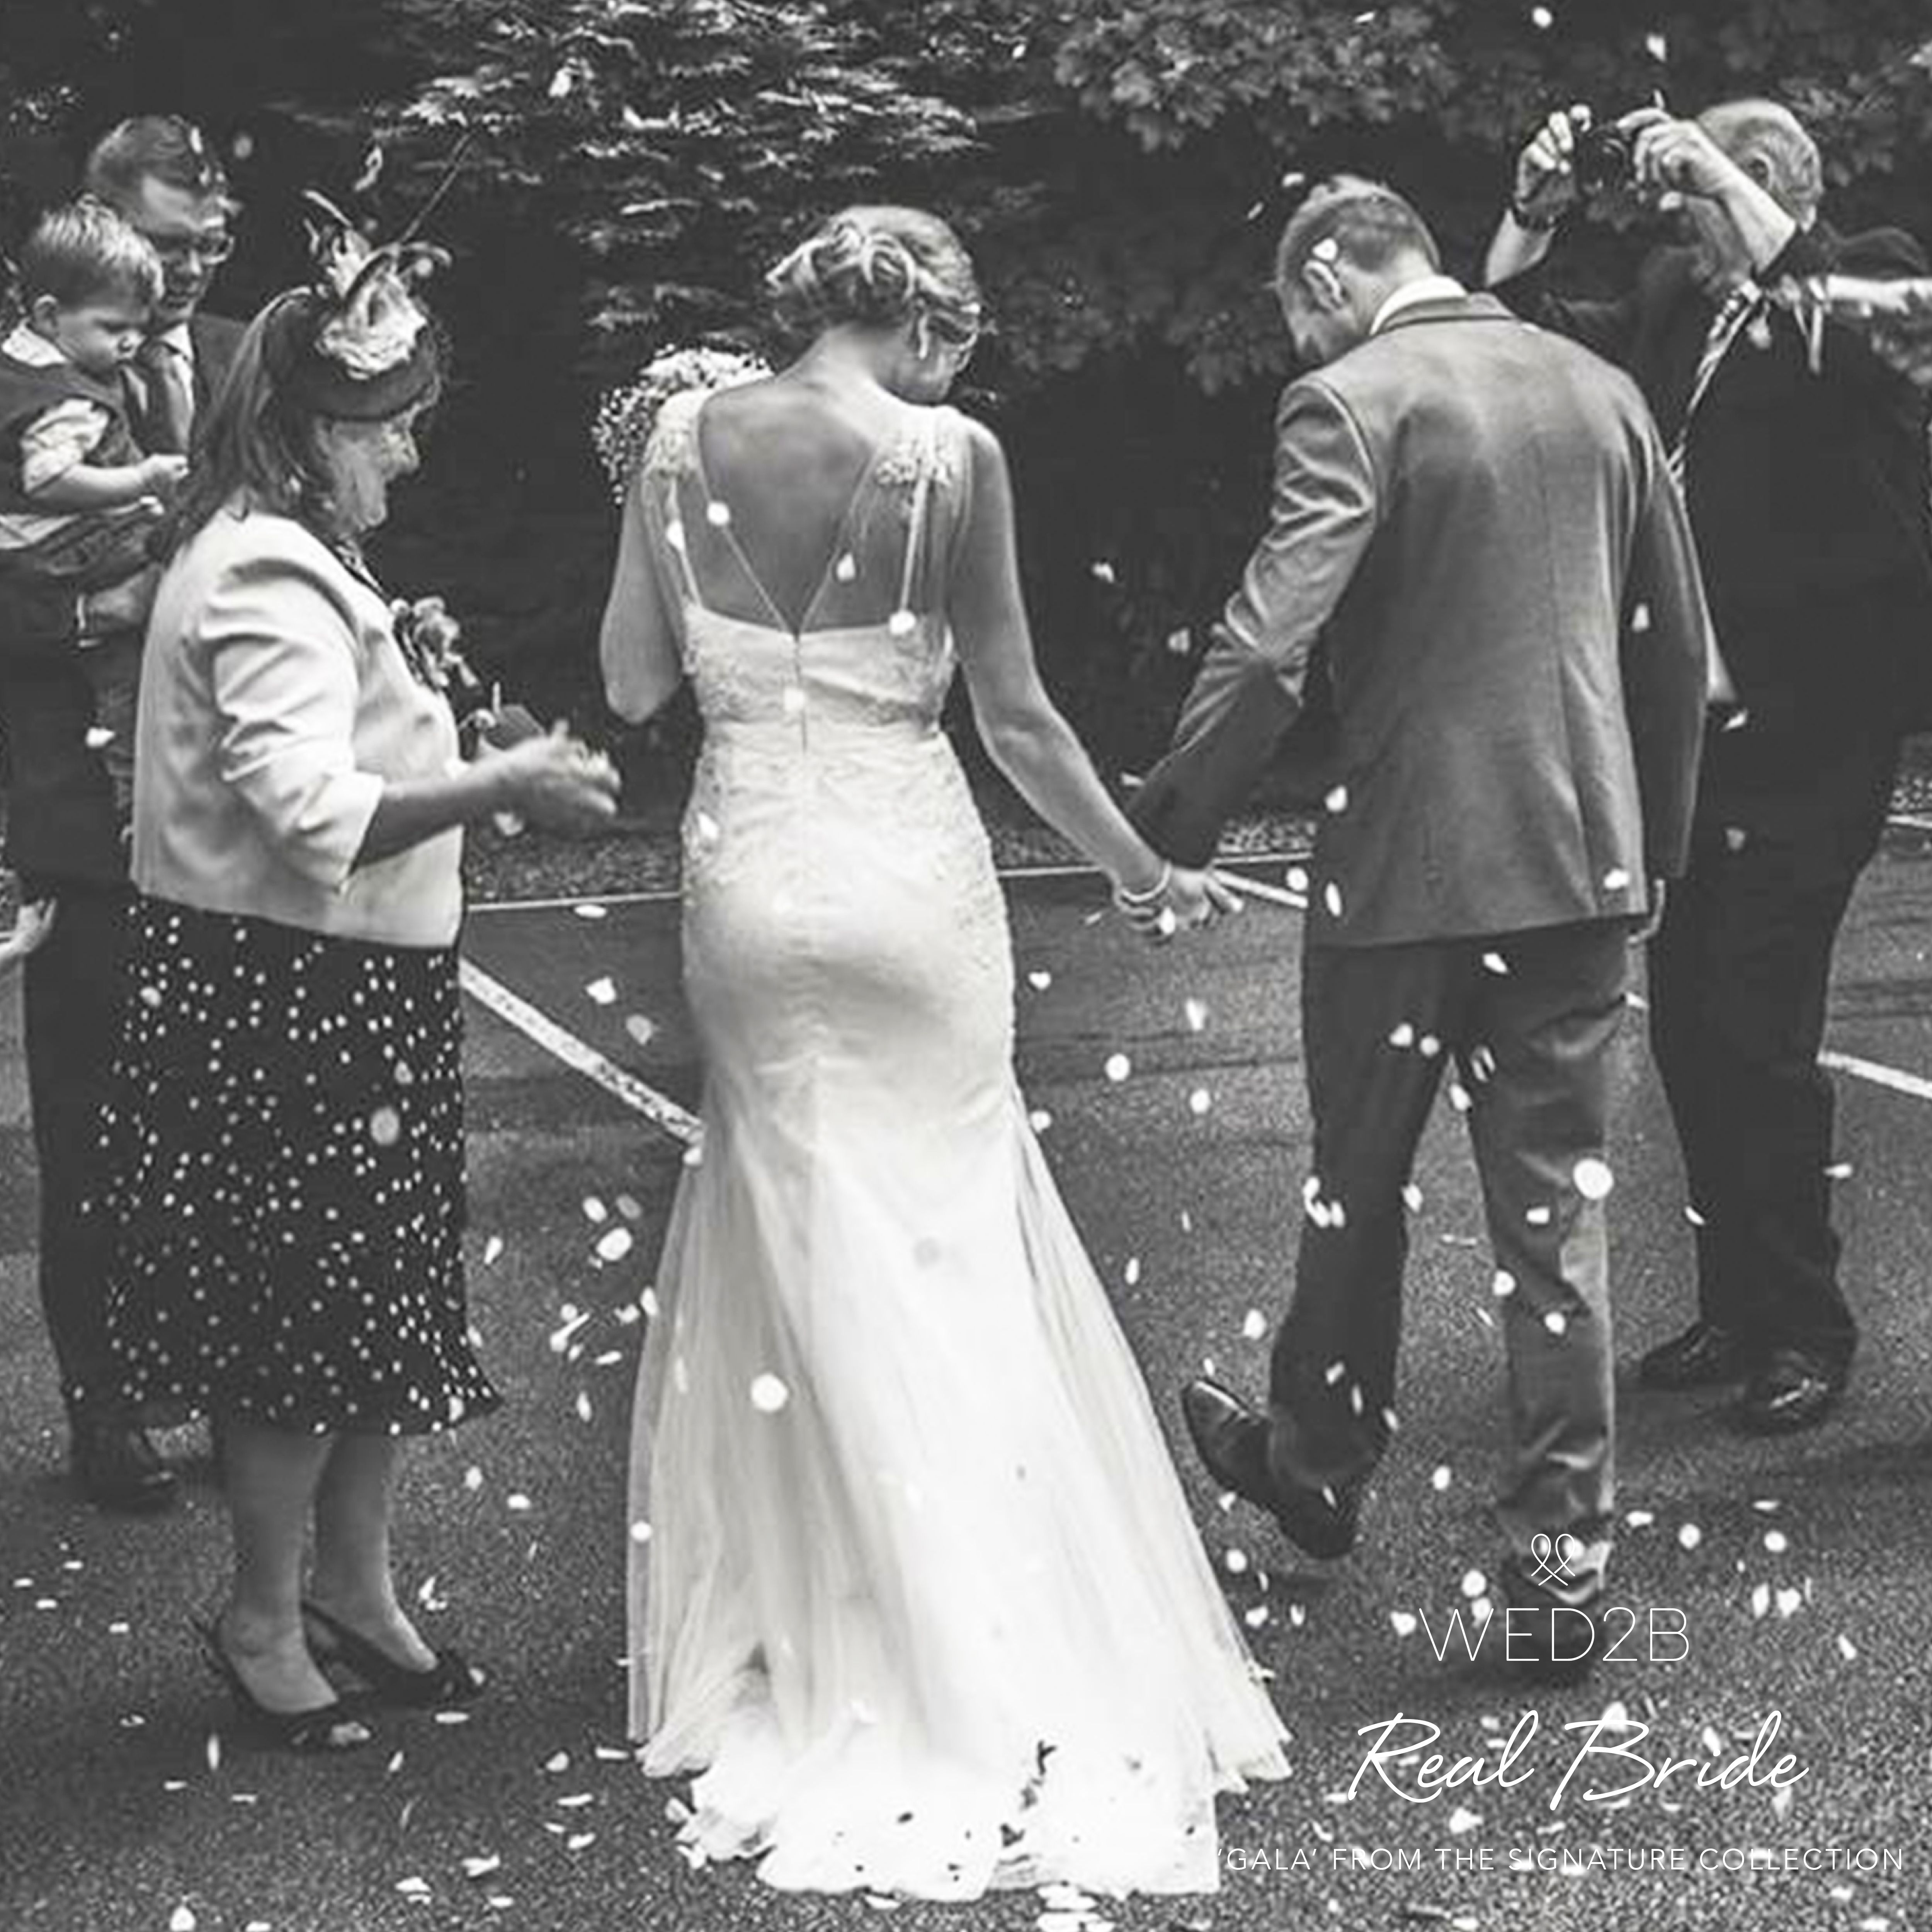 Real Brides Wed2b: Stunning Real Bride Julie In Our Signature Collection Gown